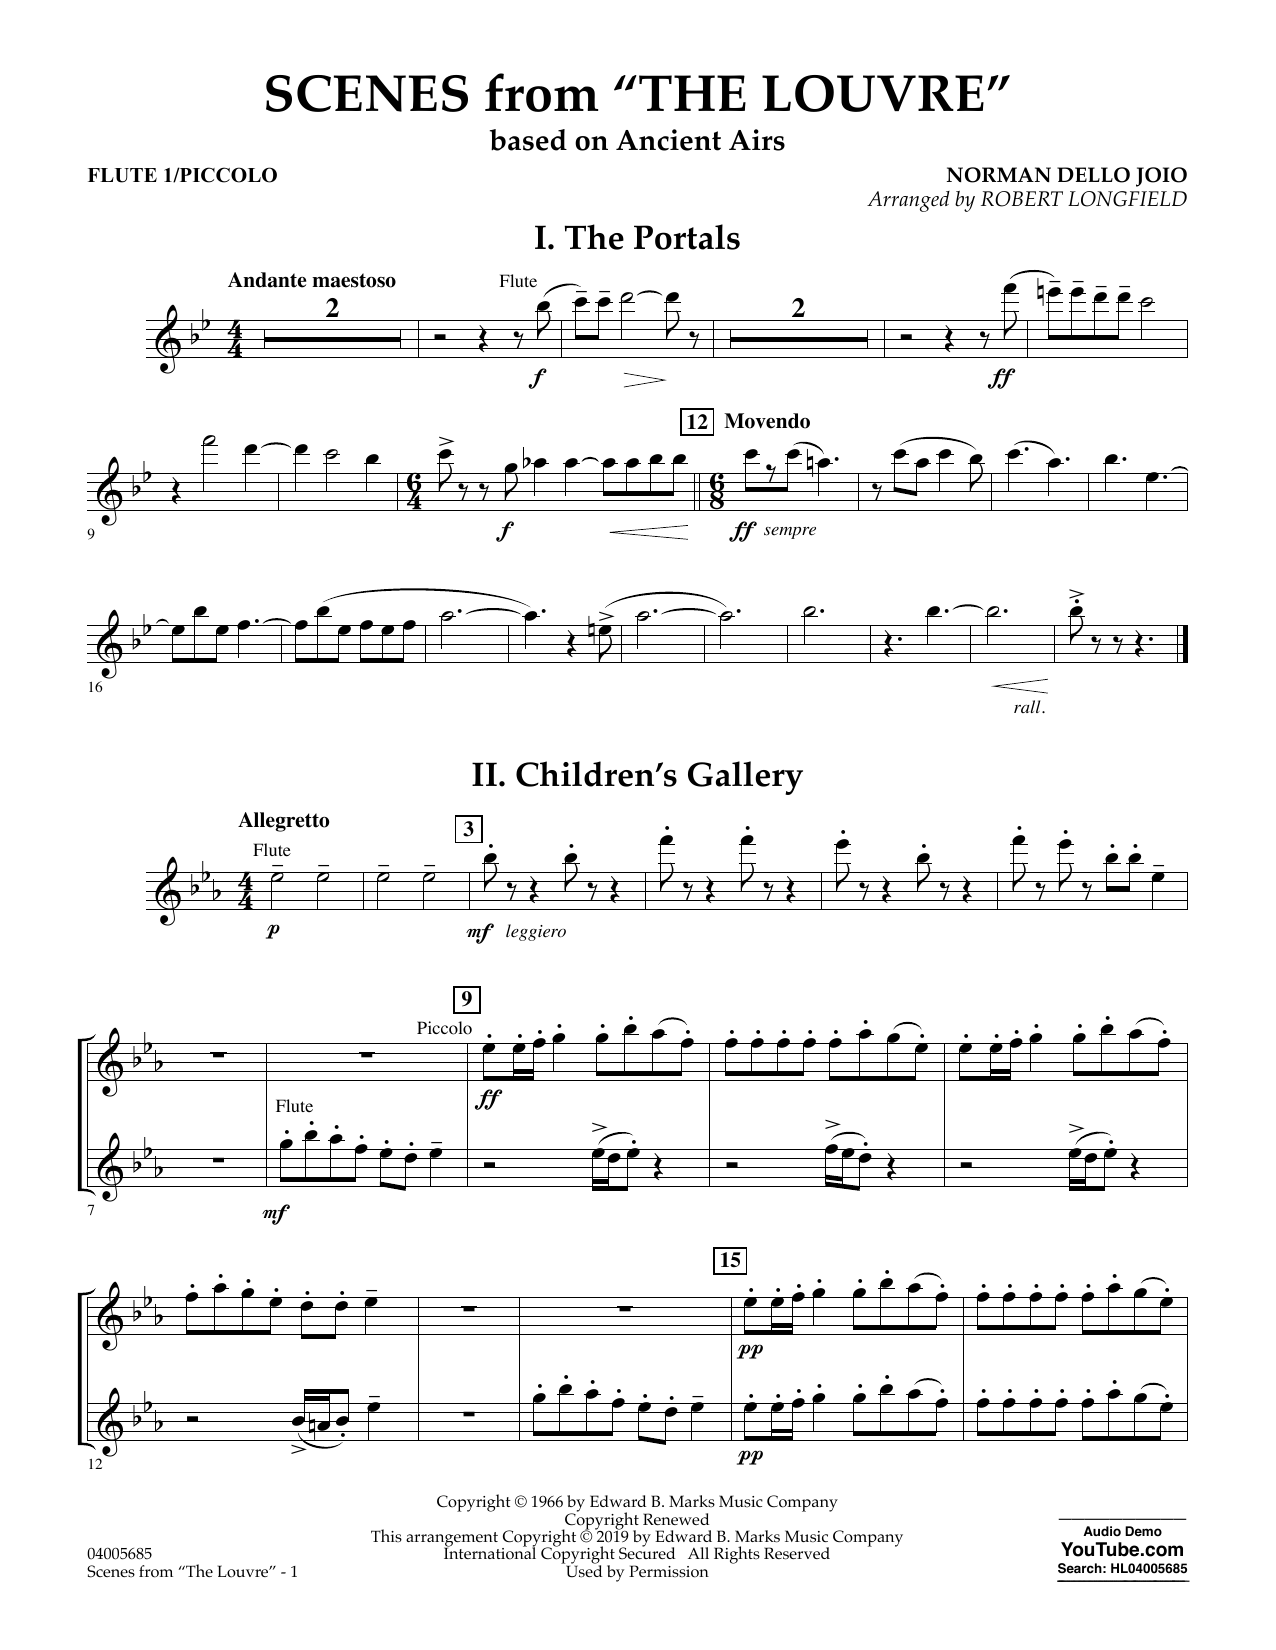 Norman Dello Joio Scenes from the Louvre (arr. Robert Longfield) - Flute 1 (Piccolo) sheet music preview music notes and score for Concert Band including 3 page(s)